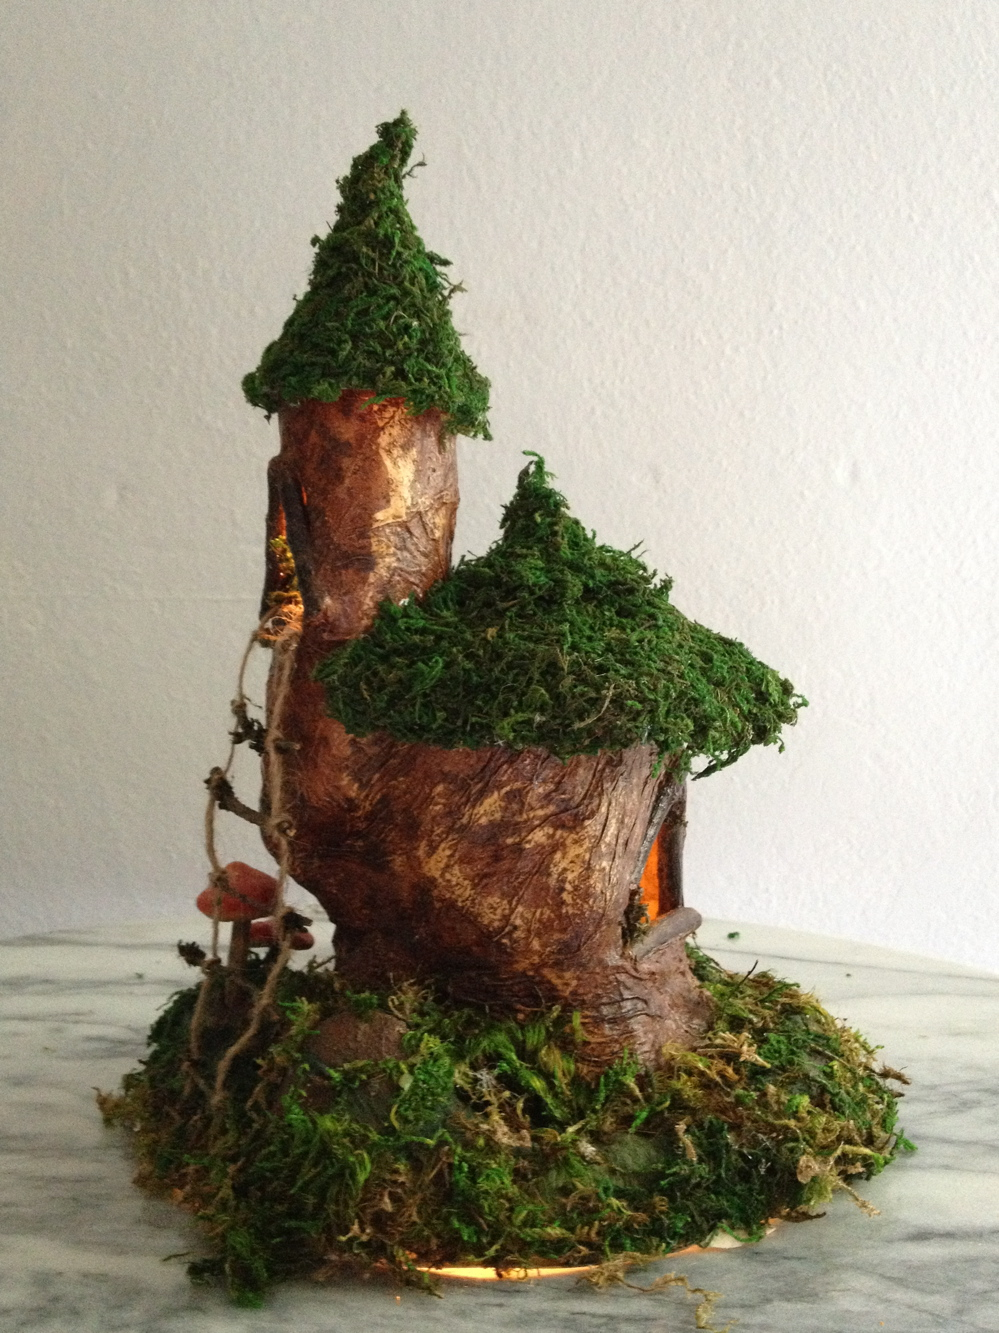 quirky handmade fairy gnome house with moss roof and mushrooms